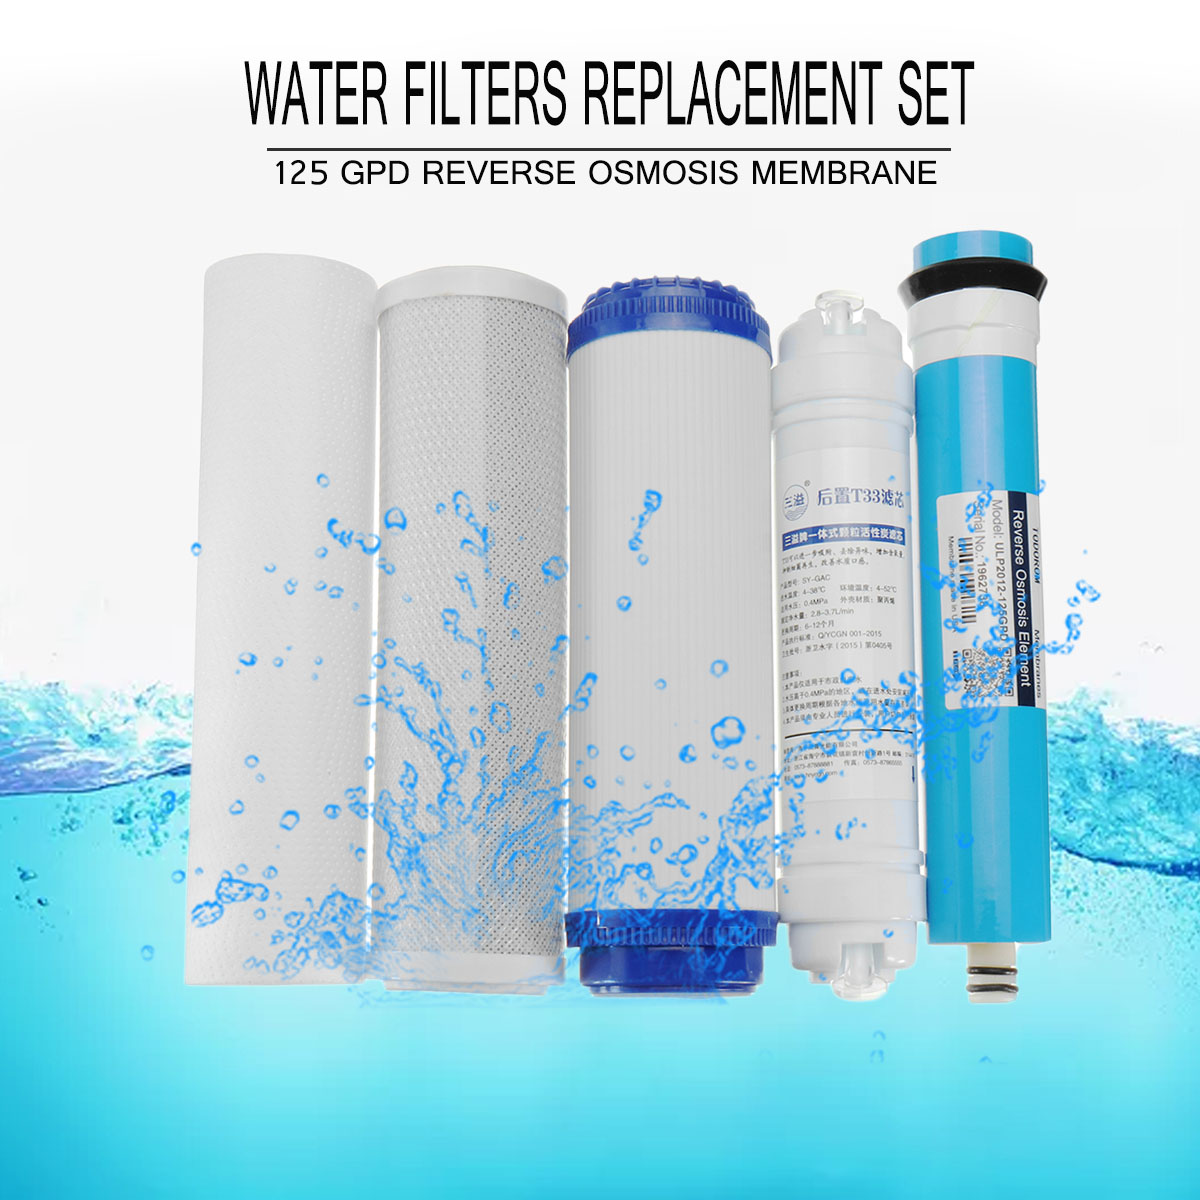 5 Stage Reverse RO Water Filters Replacement Set with Water Filter Cartridge 75/100/125 GPD Membrane Home Kitchen Water Purifier5 Stage Reverse RO Water Filters Replacement Set with Water Filter Cartridge 75/100/125 GPD Membrane Home Kitchen Water Purifier